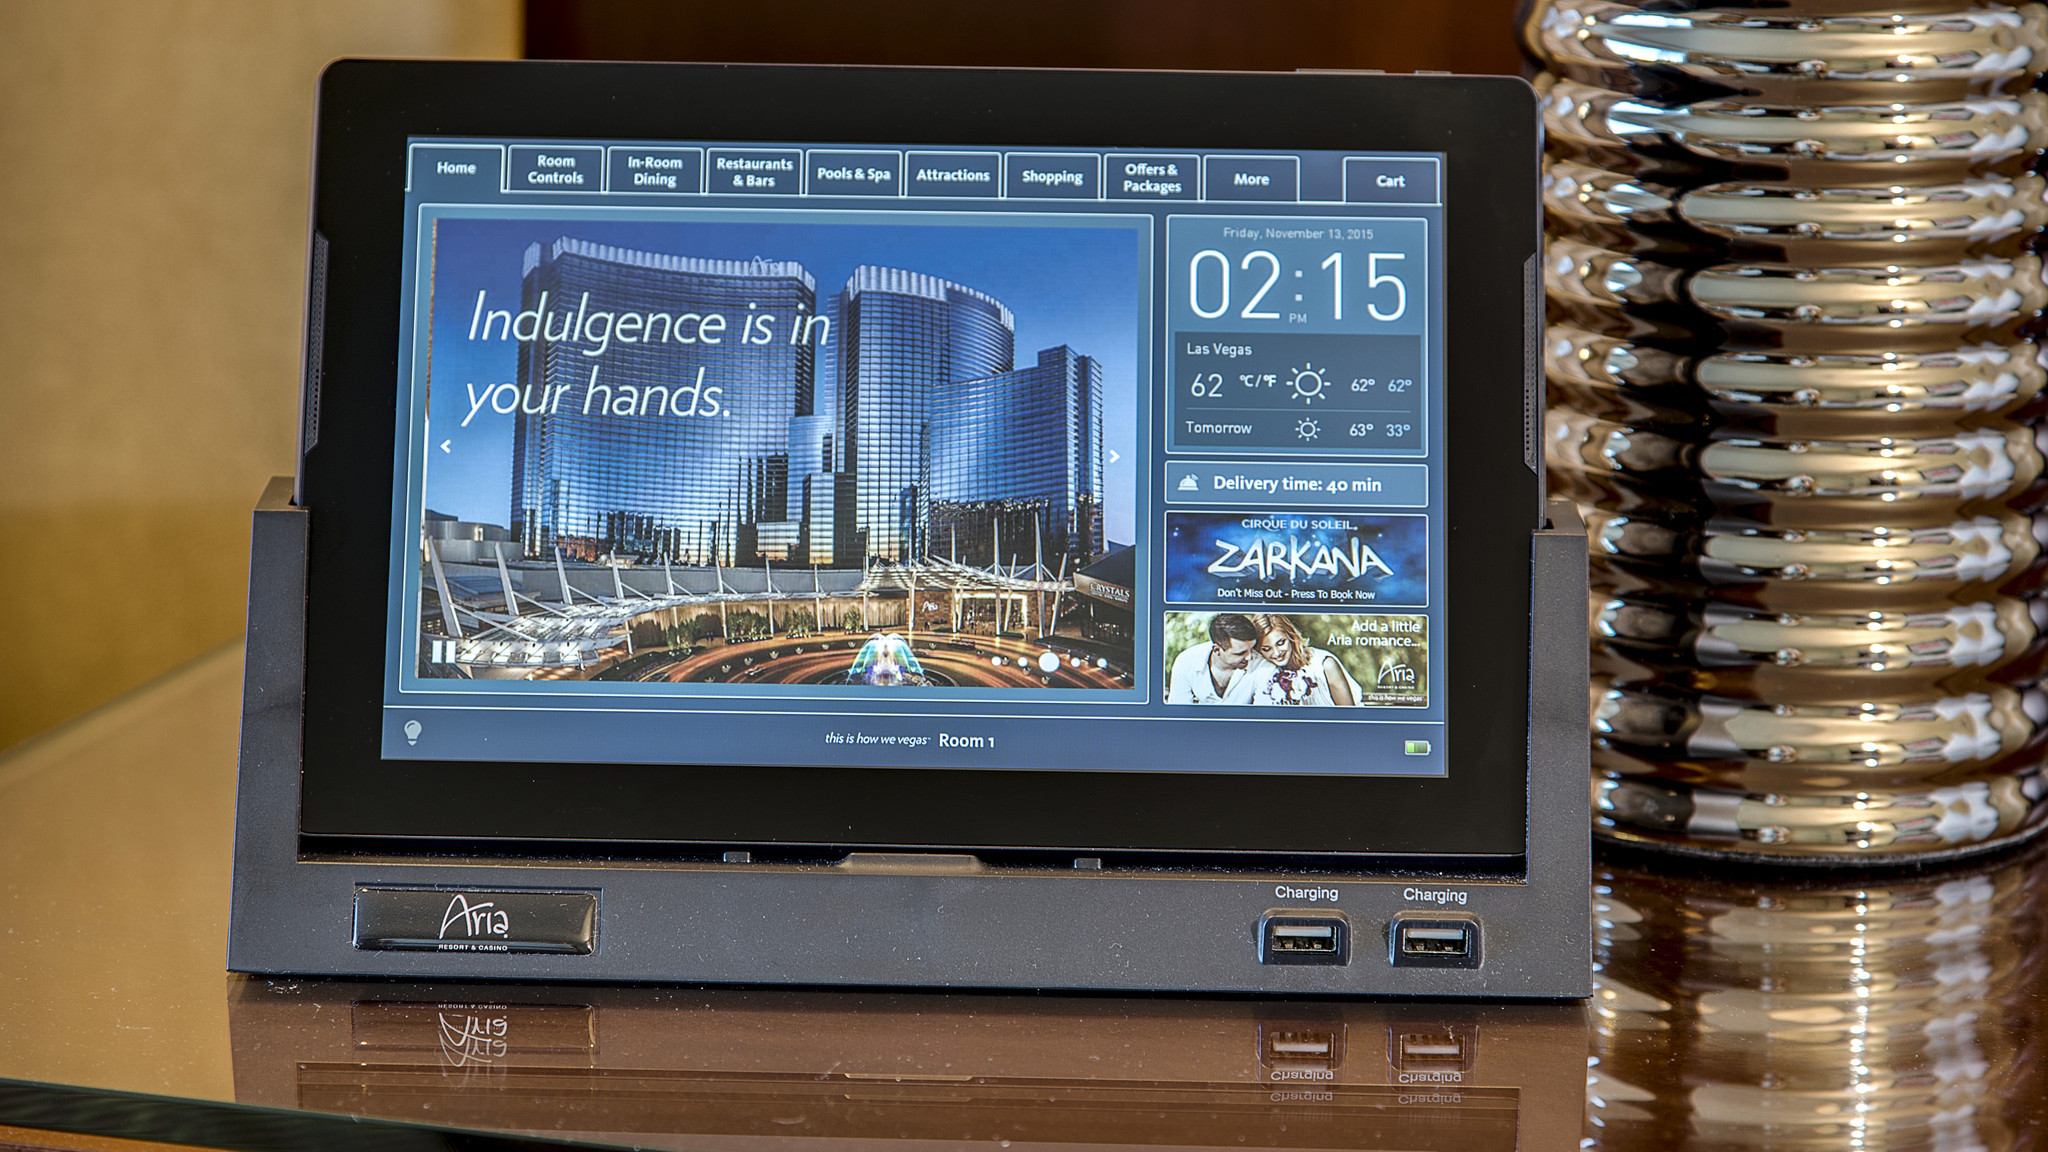 Las vegas 39 aria hotel brings guest friendly tablets to for Tablet hotels